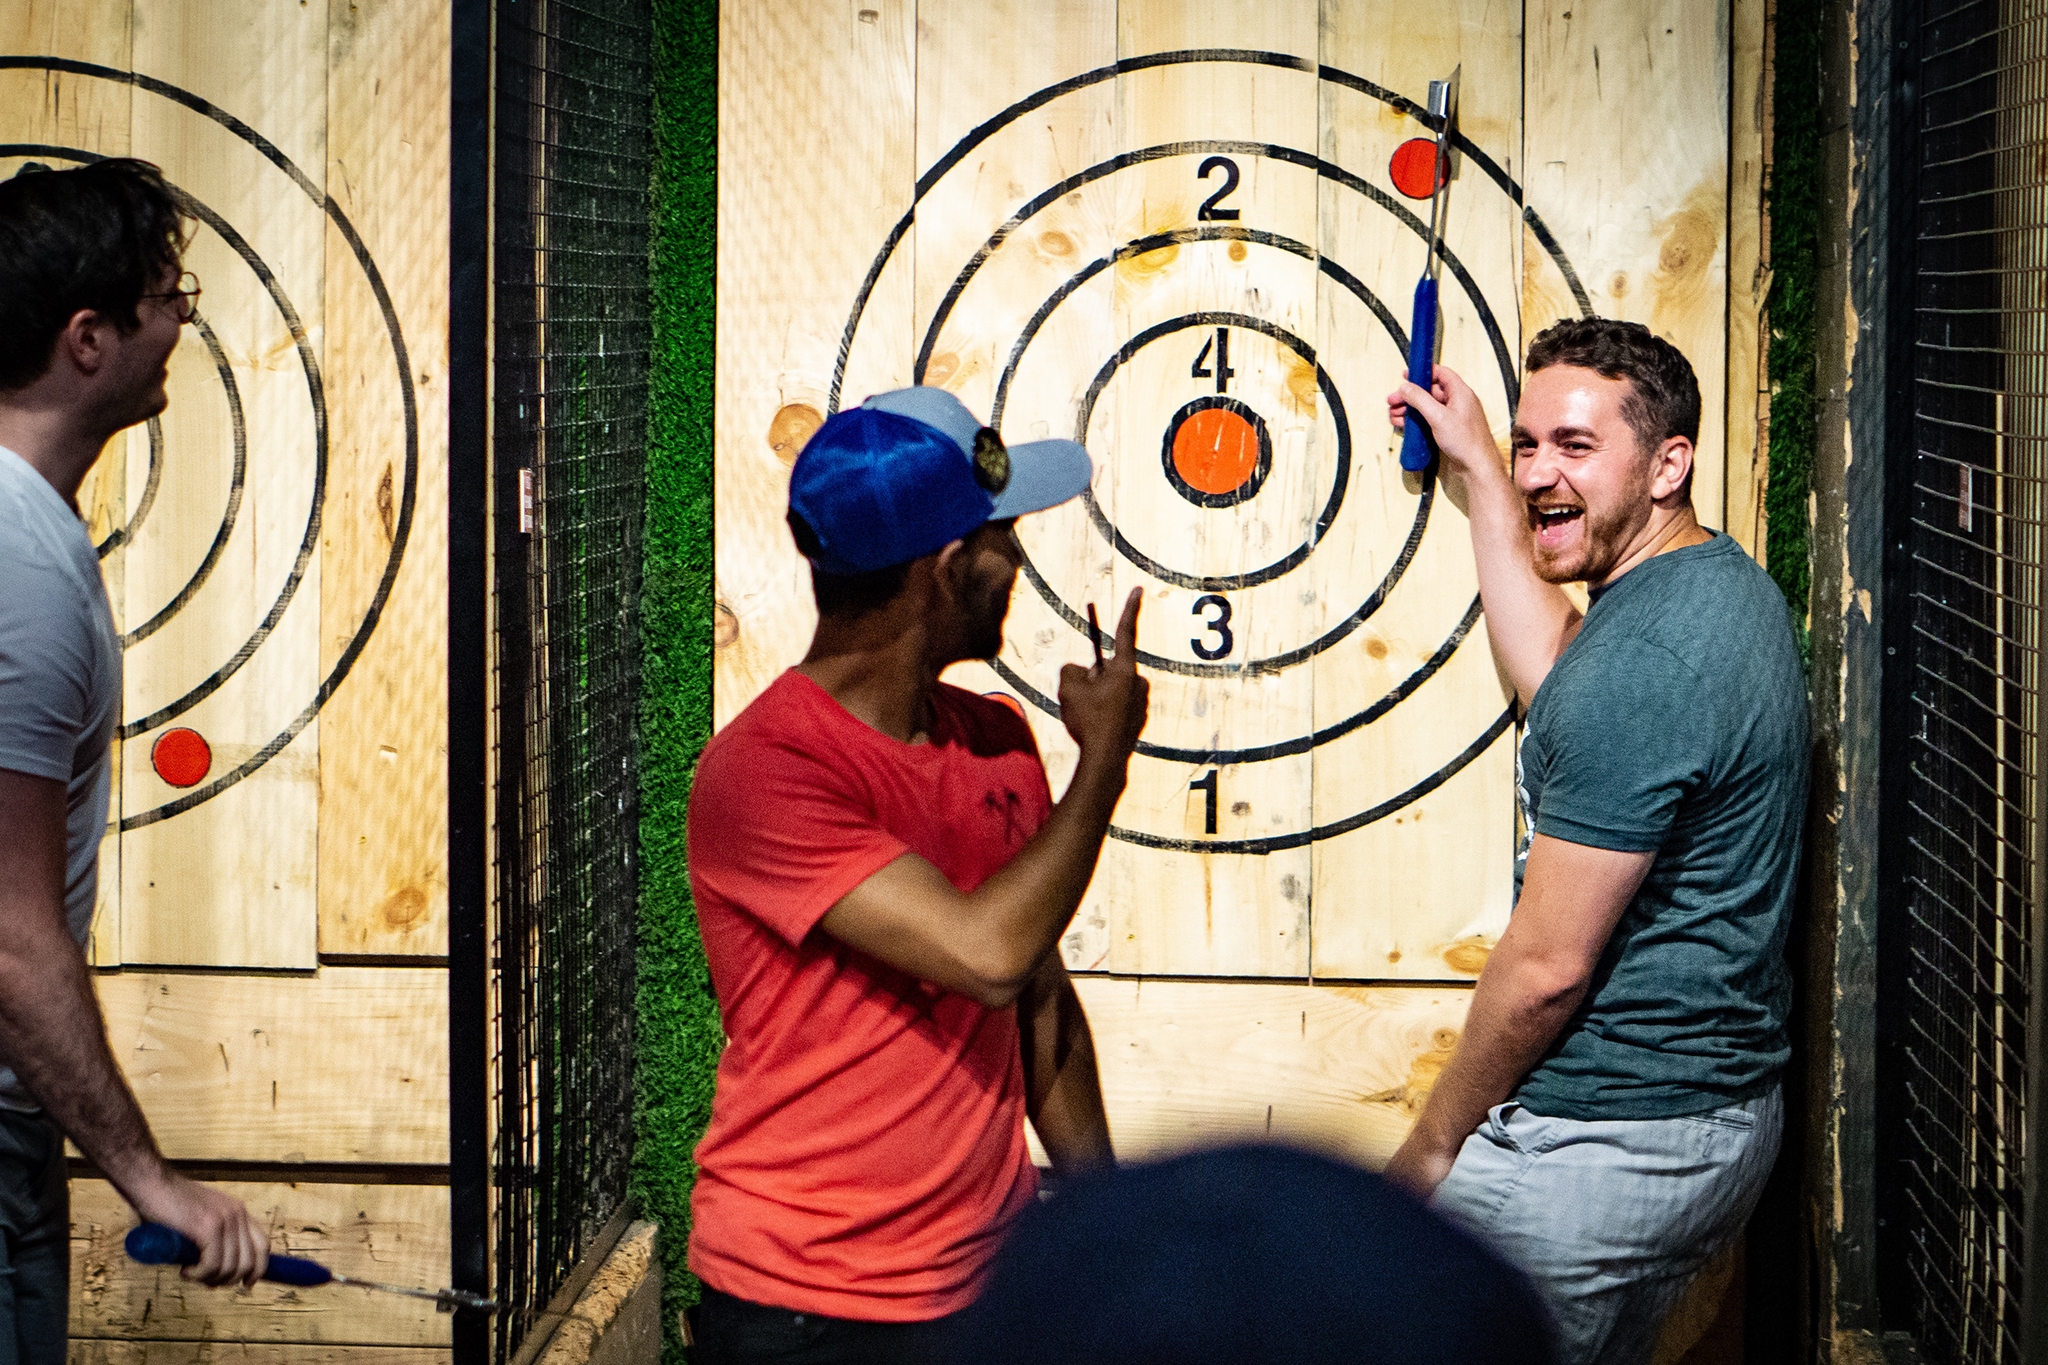 Kick Axe Throwing